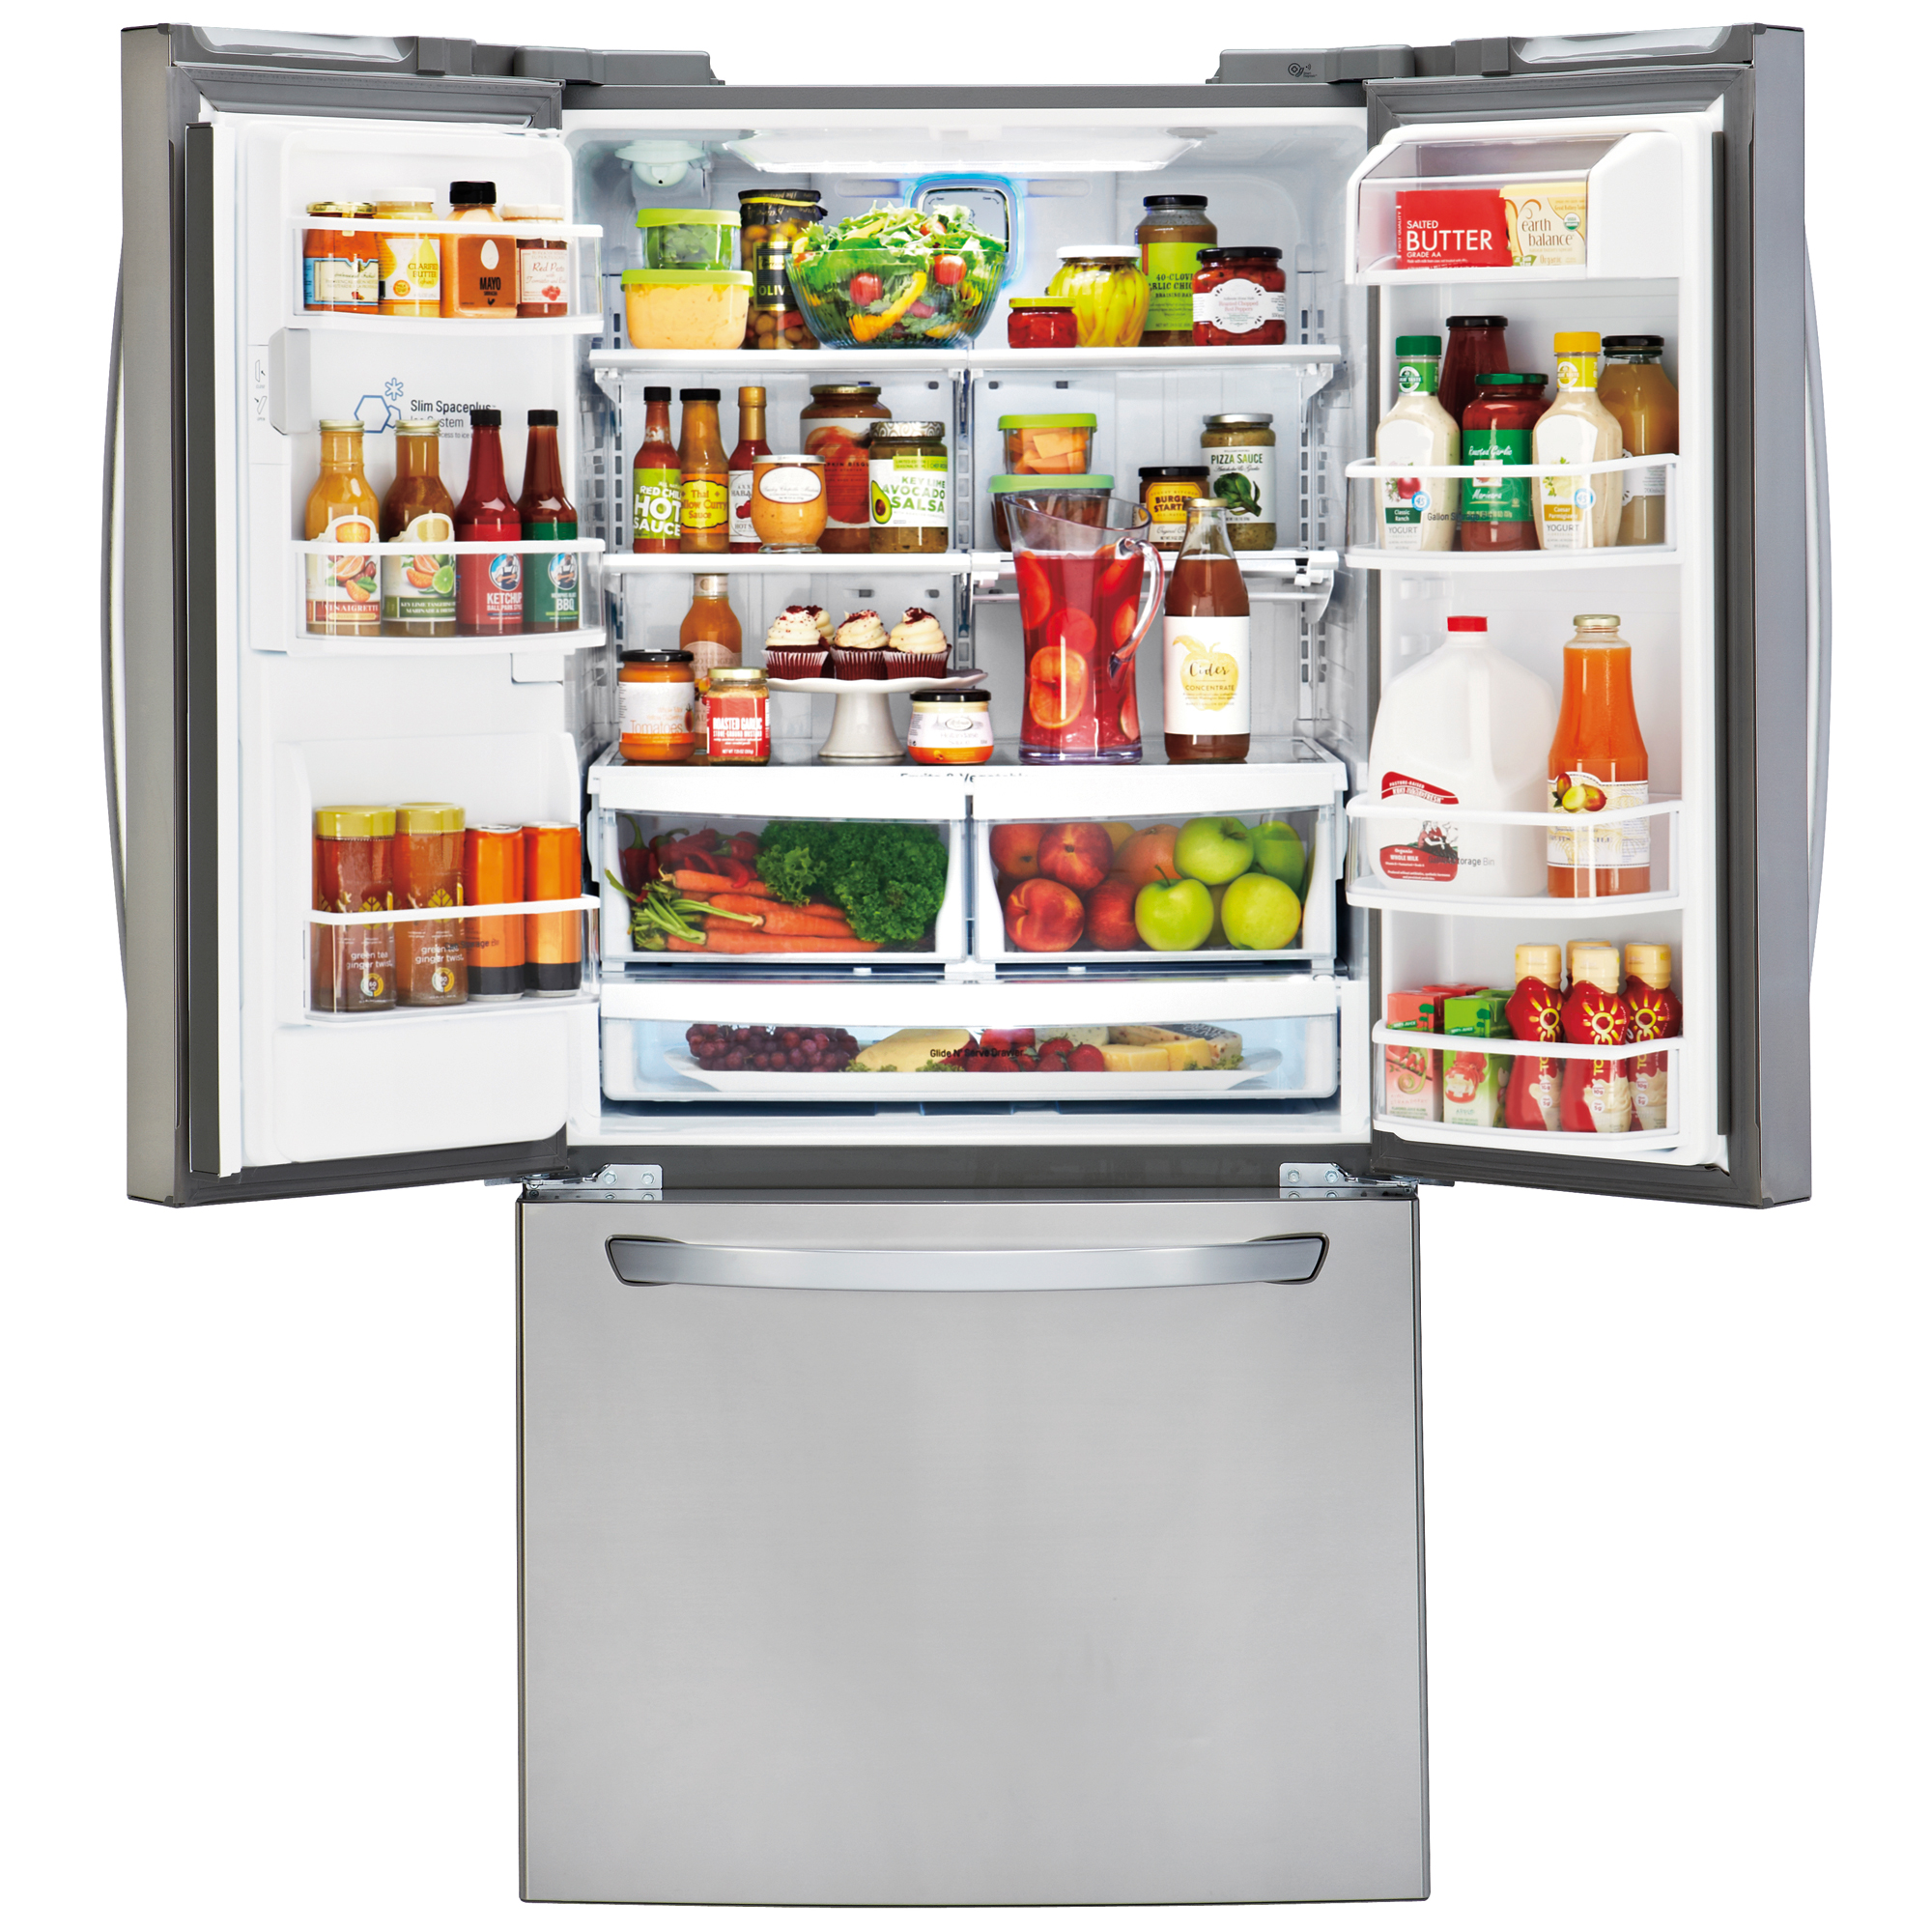 LG LFXS24623S 24.2 Cu. Ft. French Door Refrigerator w/ Ice & Water – Stainless Steel